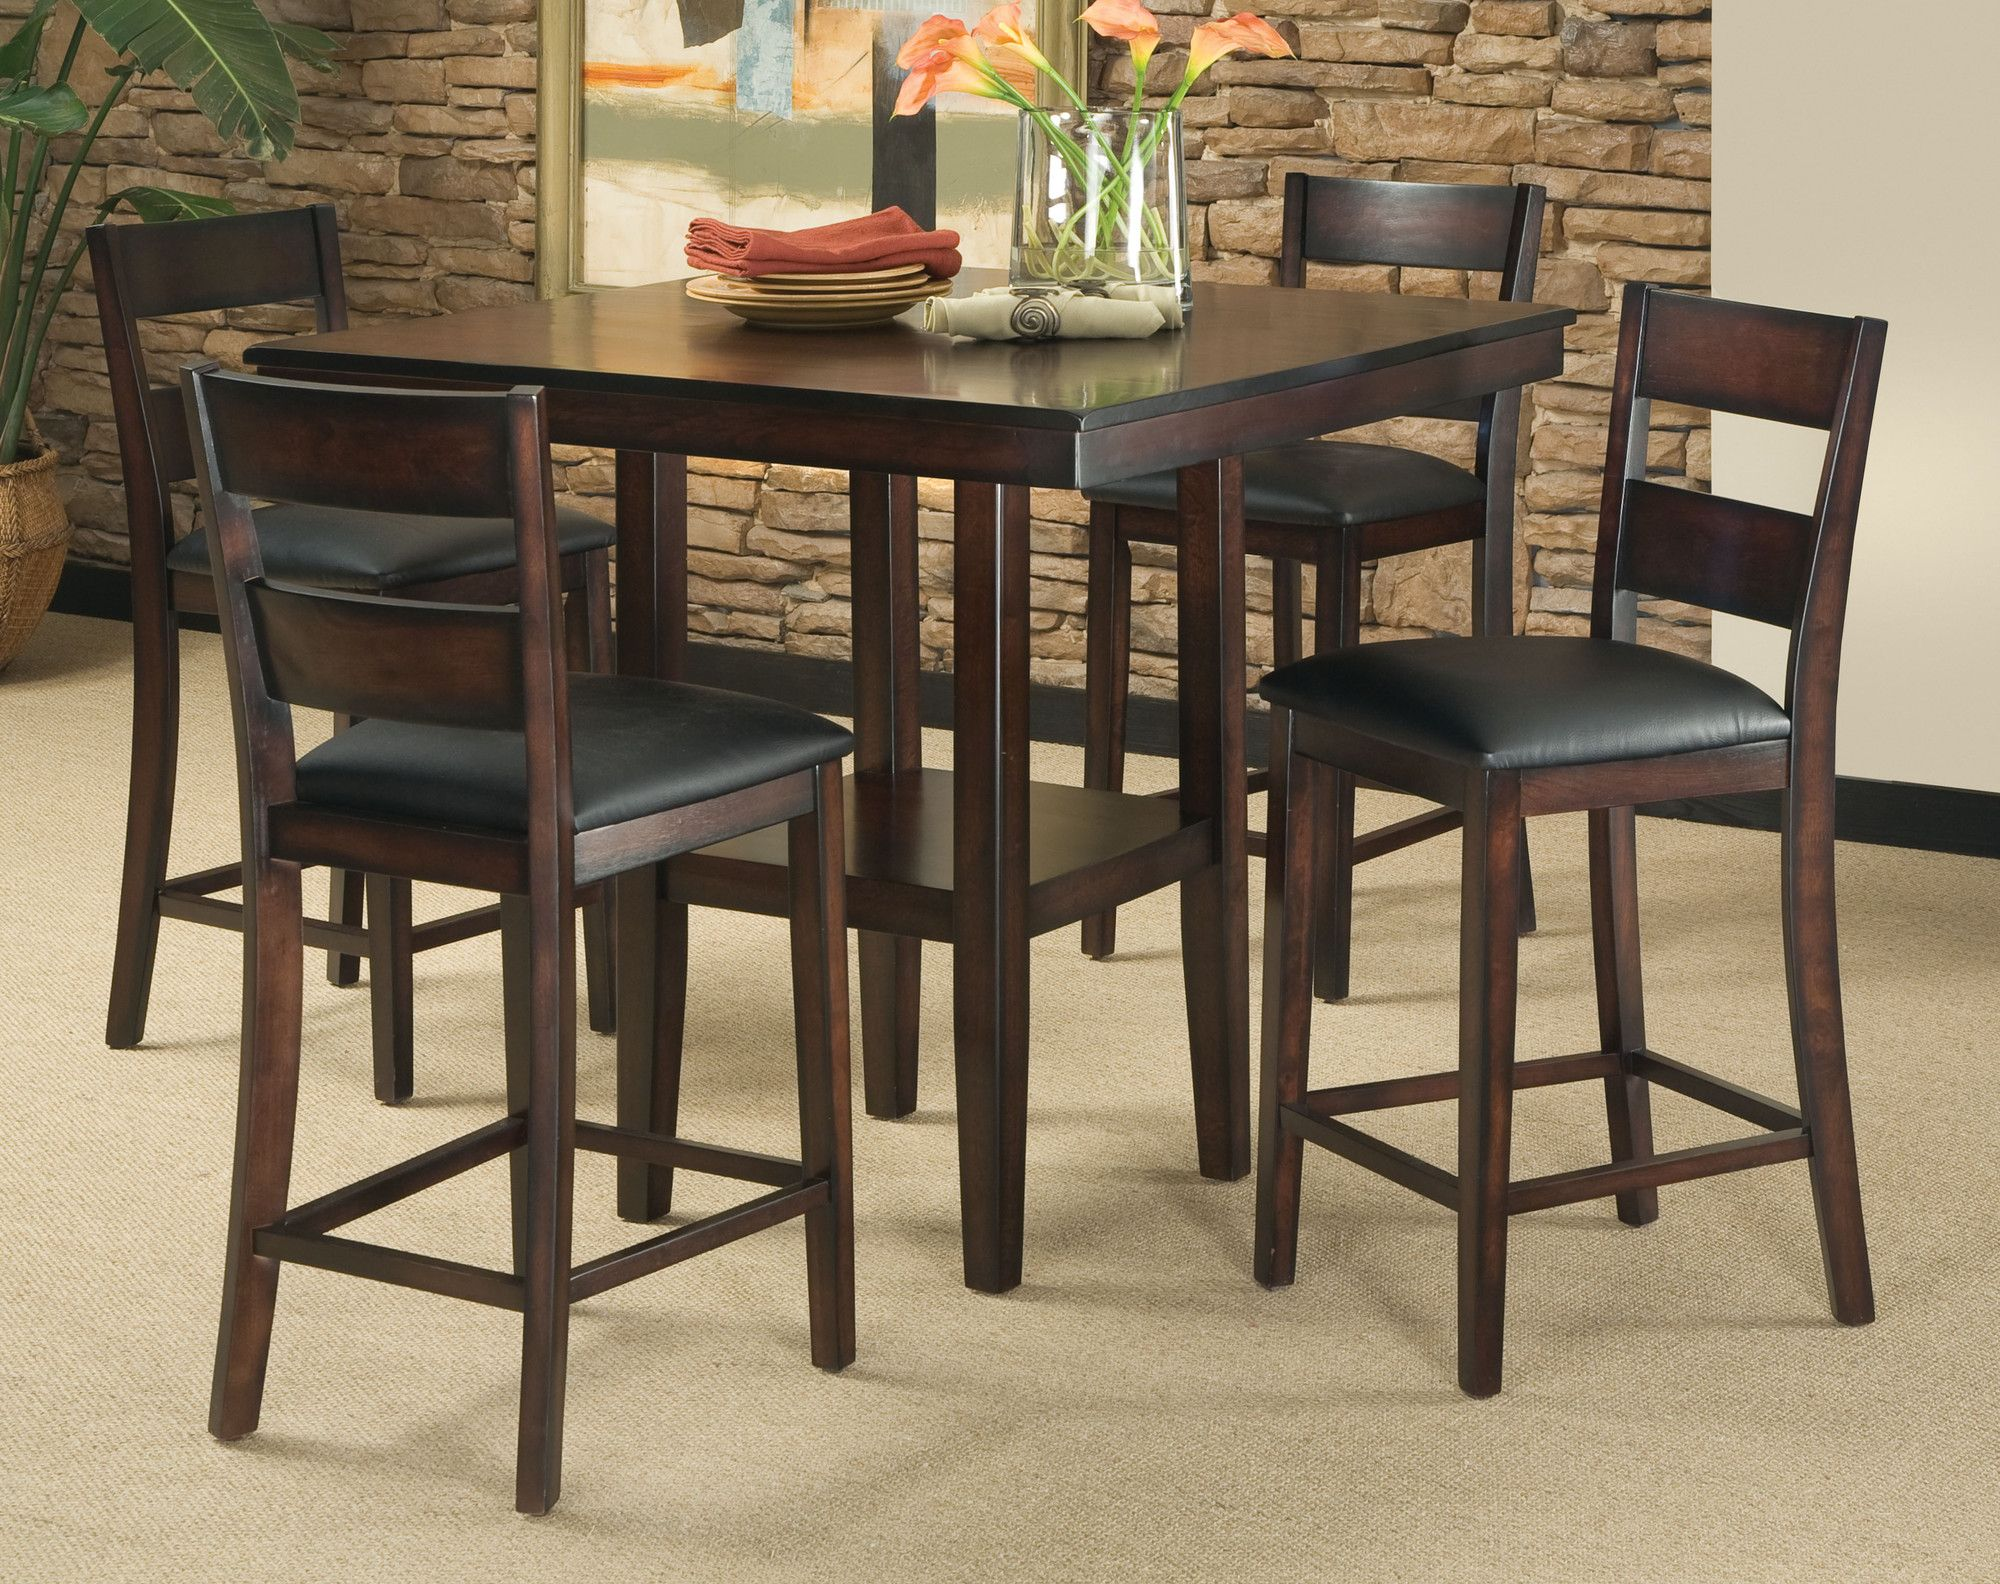 Standard Furniture Pendelton Counter Height Table and Four Stools in Dark cherry My new kitchen table! : kitchen bar stools and table sets - pezcame.com